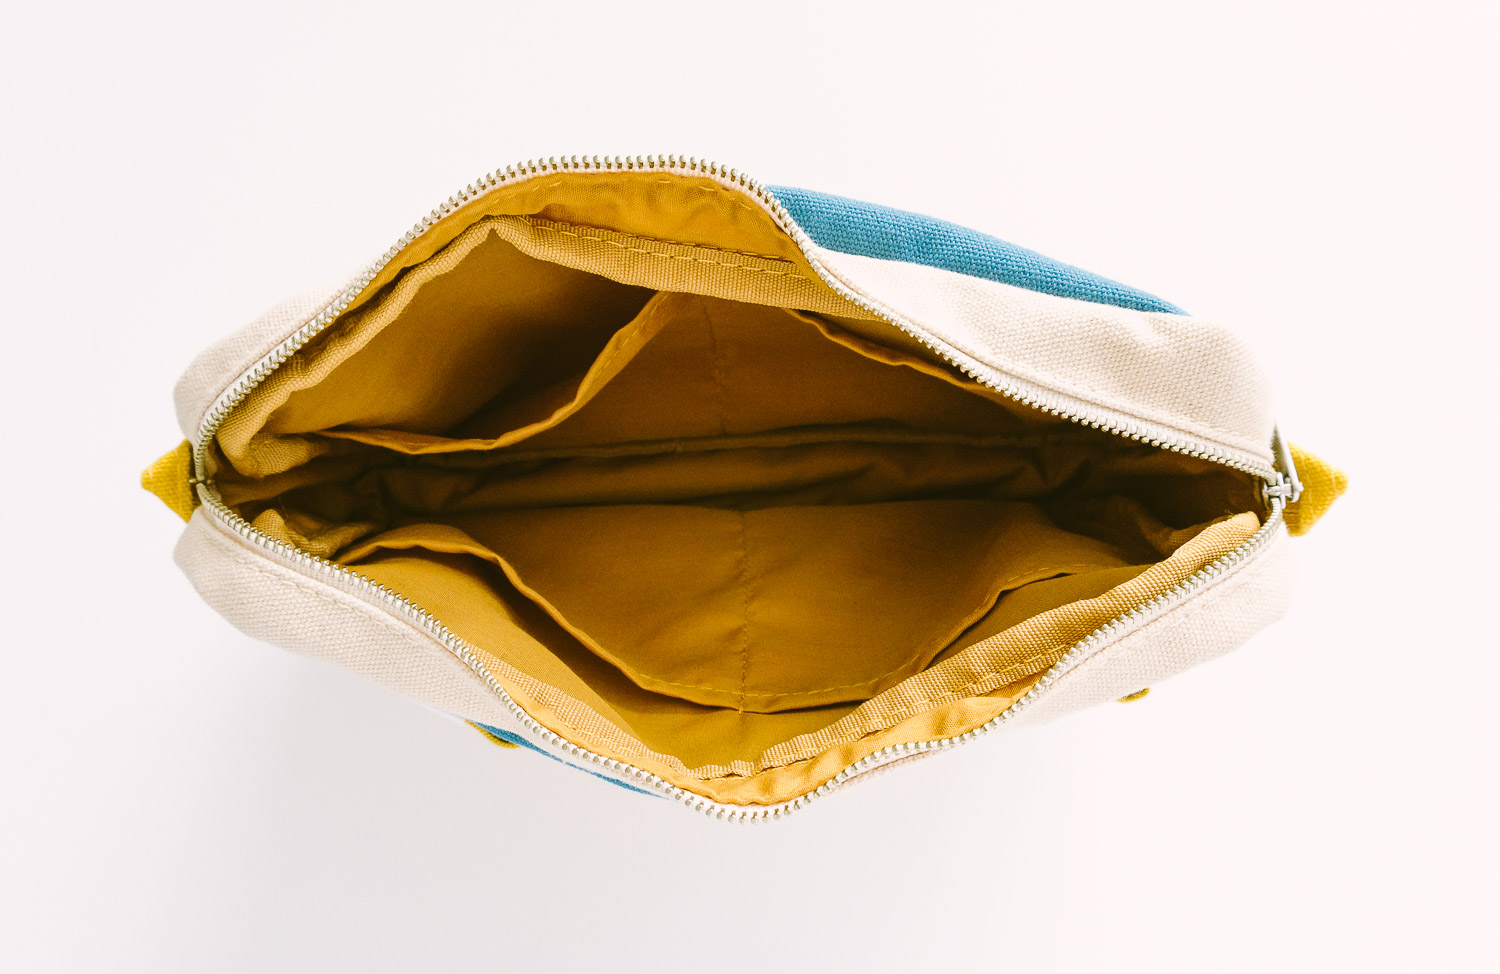 The pouch is roughly 10.5 x 7.25 inches.